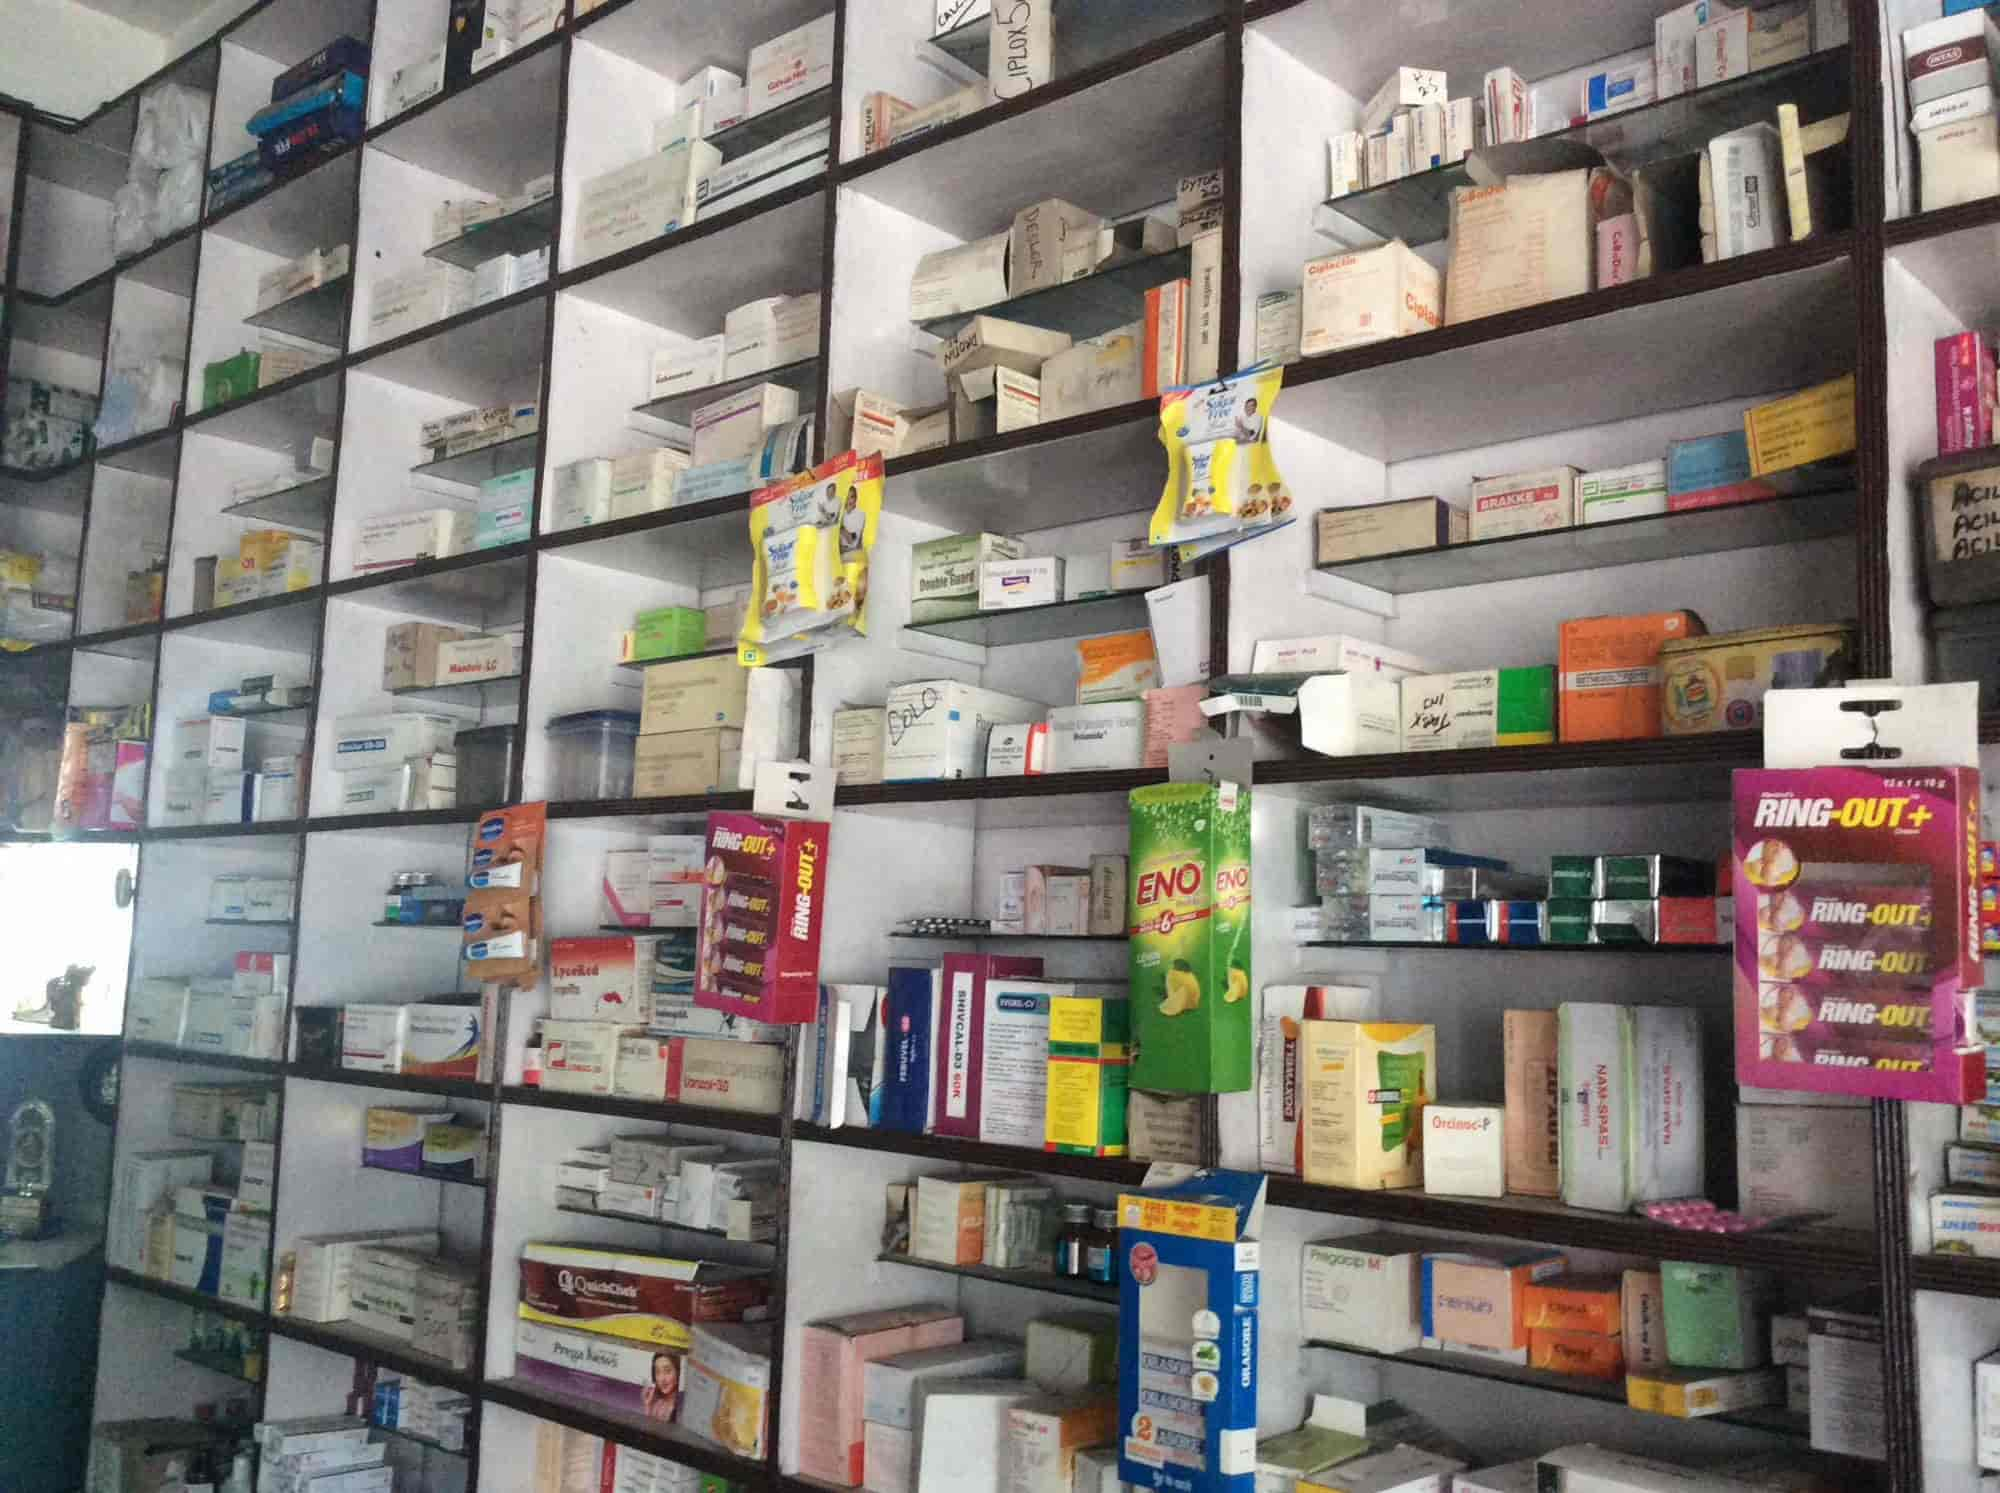 Wunderbar Finest Affordable Awesome Latest Grover Bros Chemists Jalandhar City  Chemists In Jalandhar Justdial With Groer Bro With Rollschrank Bro With Bro  Gnstig With ...